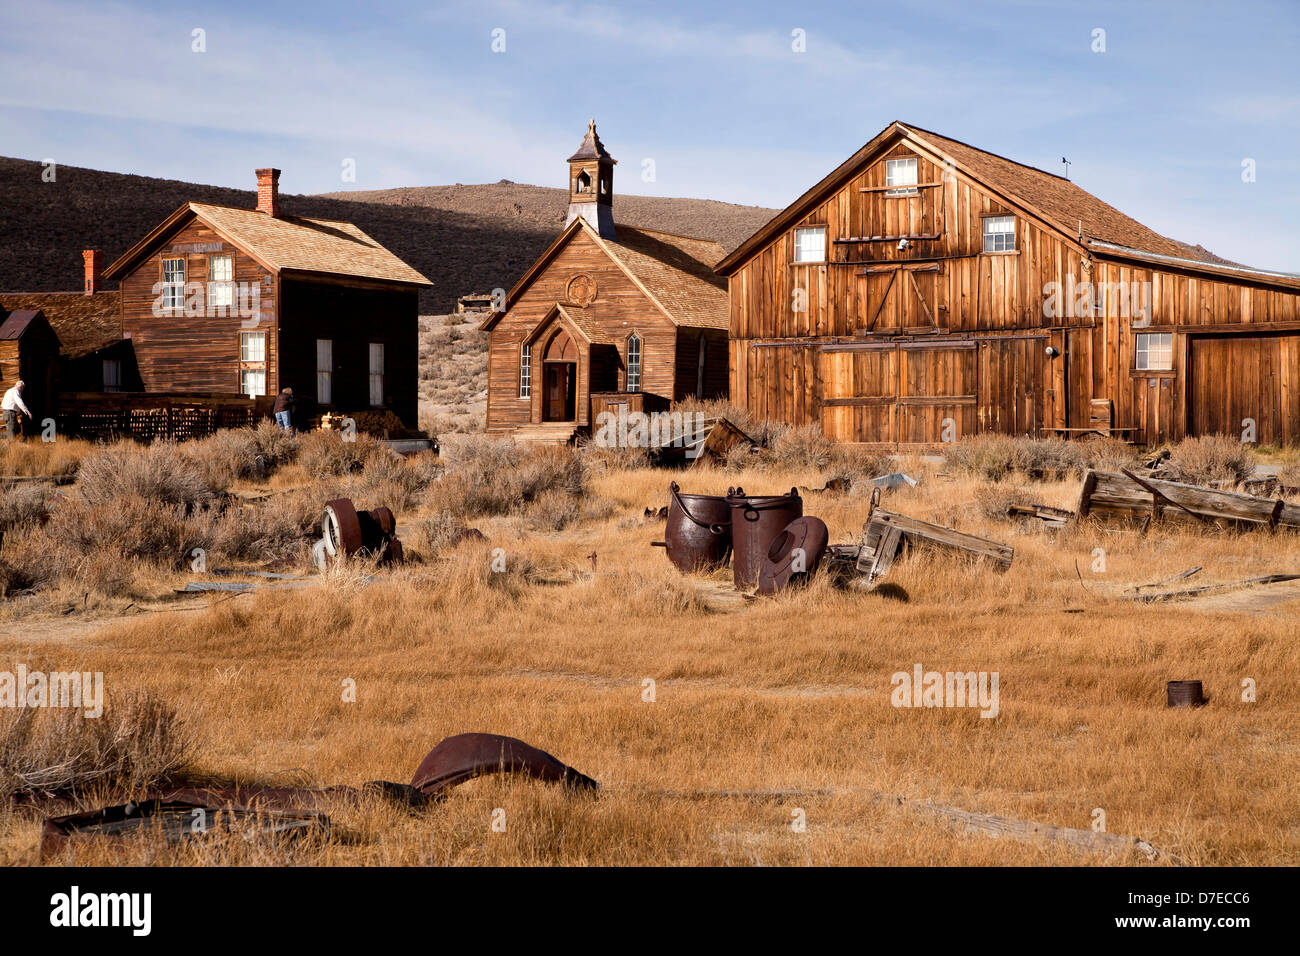 ghost town Bodie, California, United States of America, USA - Stock Image